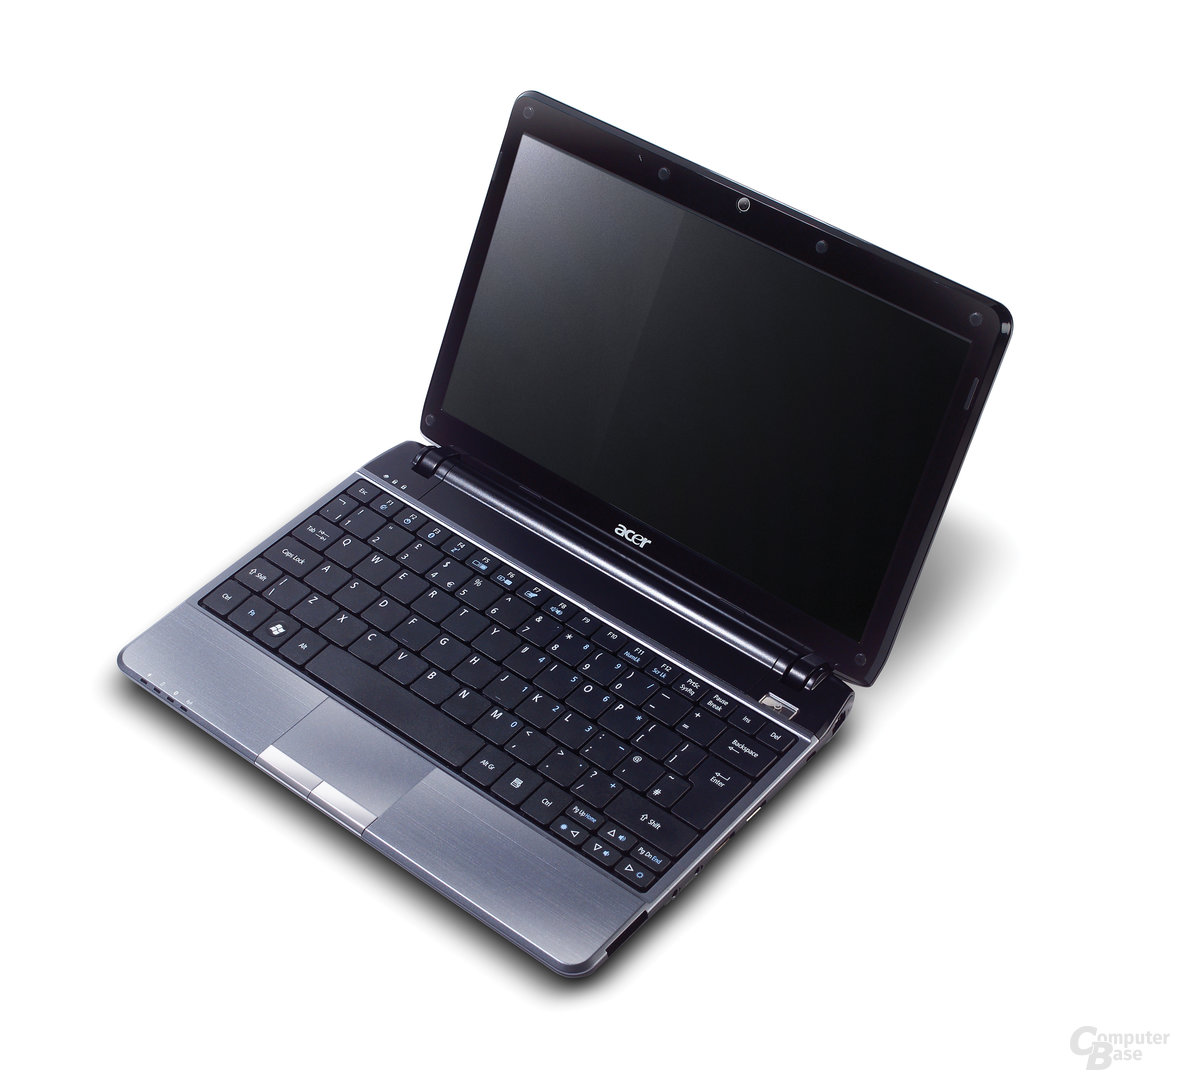 Acer Aspire 1810T in schwarz